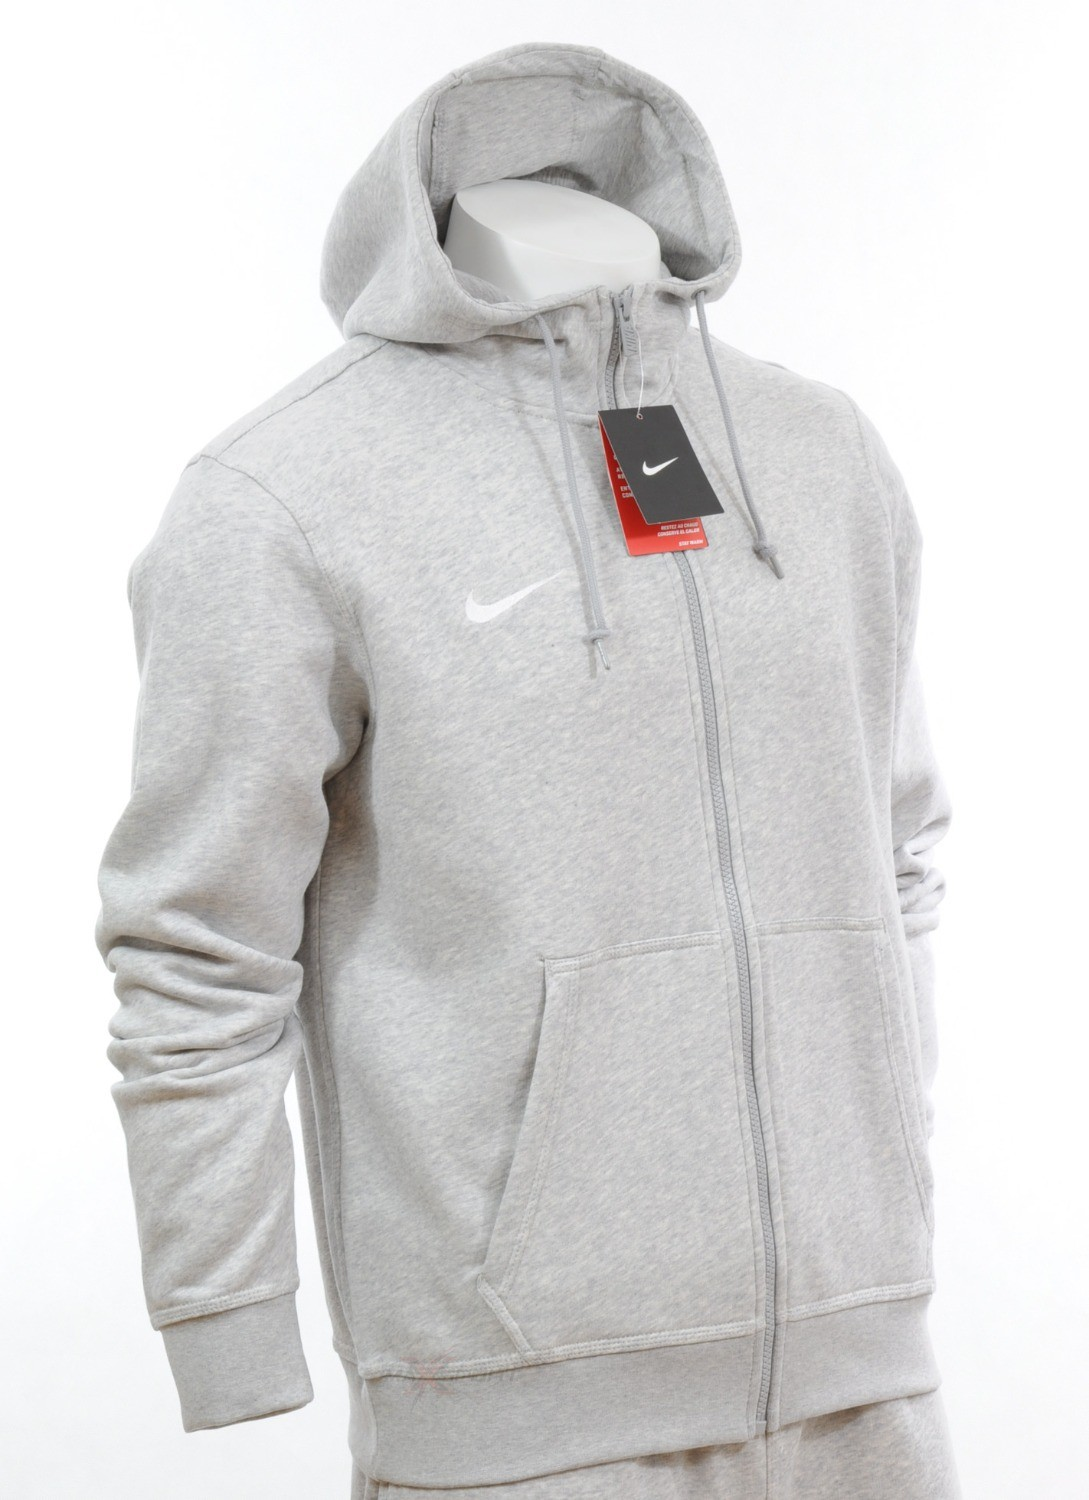 0915 new mens fleece nike full zip hooded sweatshirt top. Black Bedroom Furniture Sets. Home Design Ideas